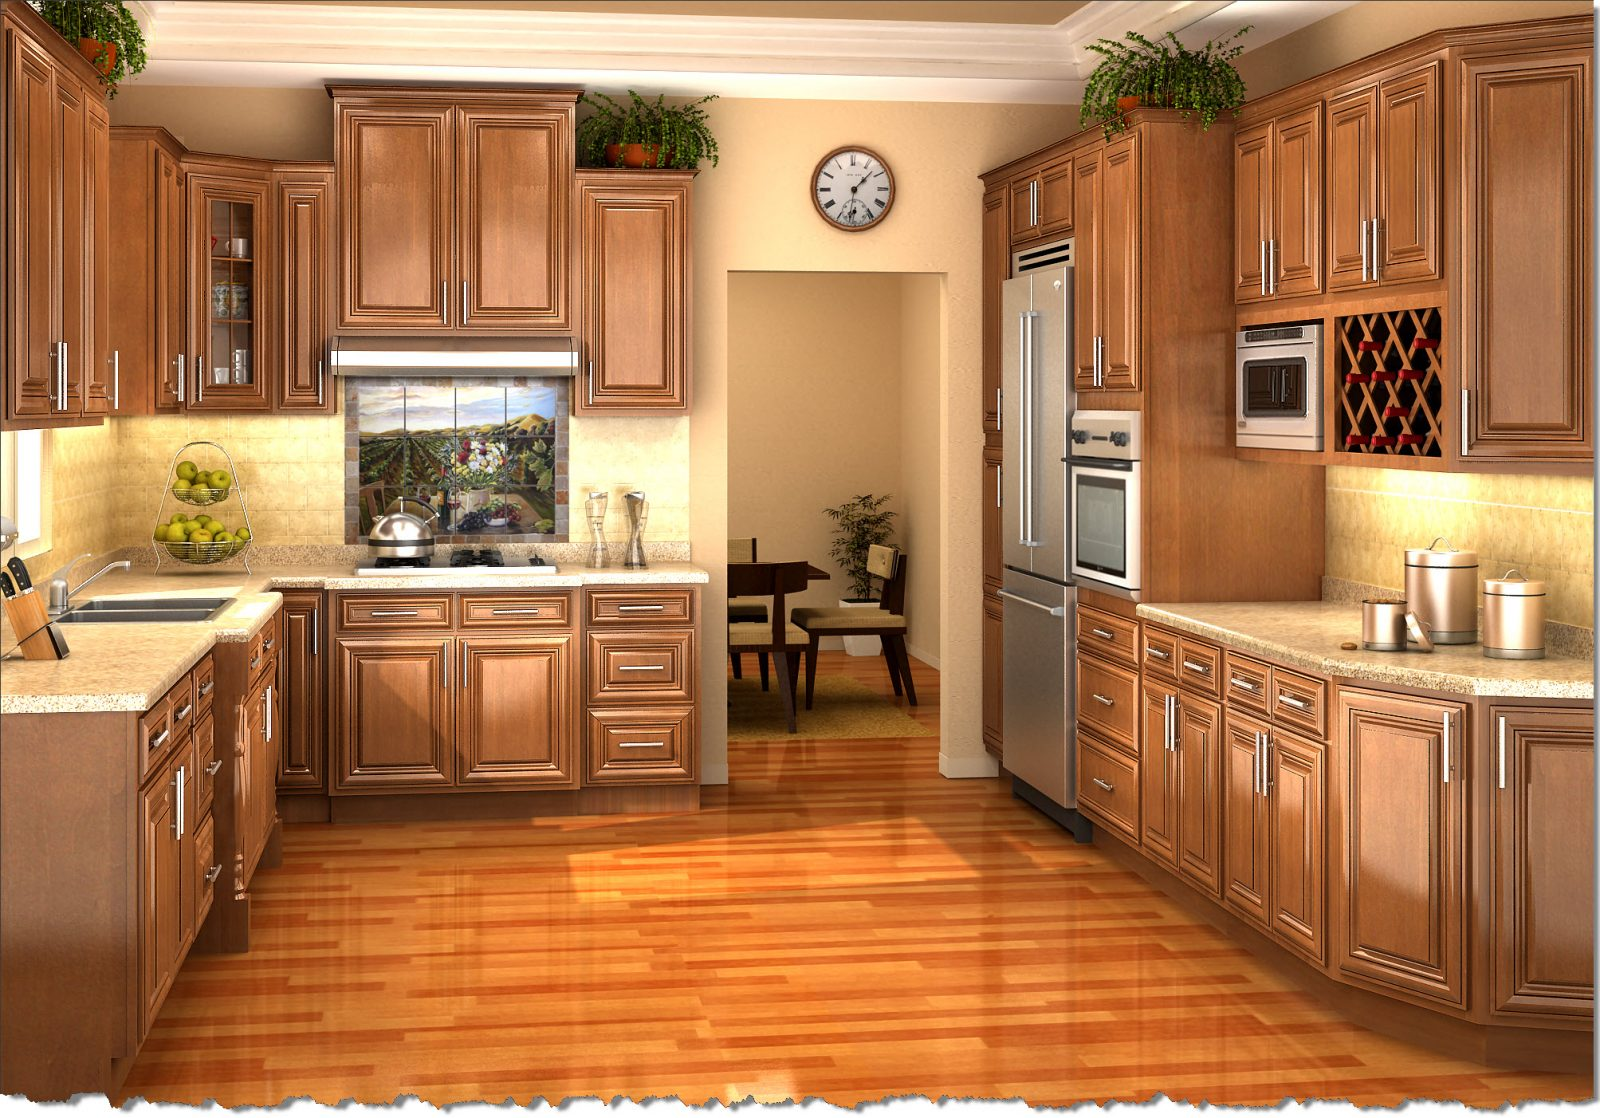 instock kitchen cabinets houston kitchen cabinets affordable custom cabinets in 17934